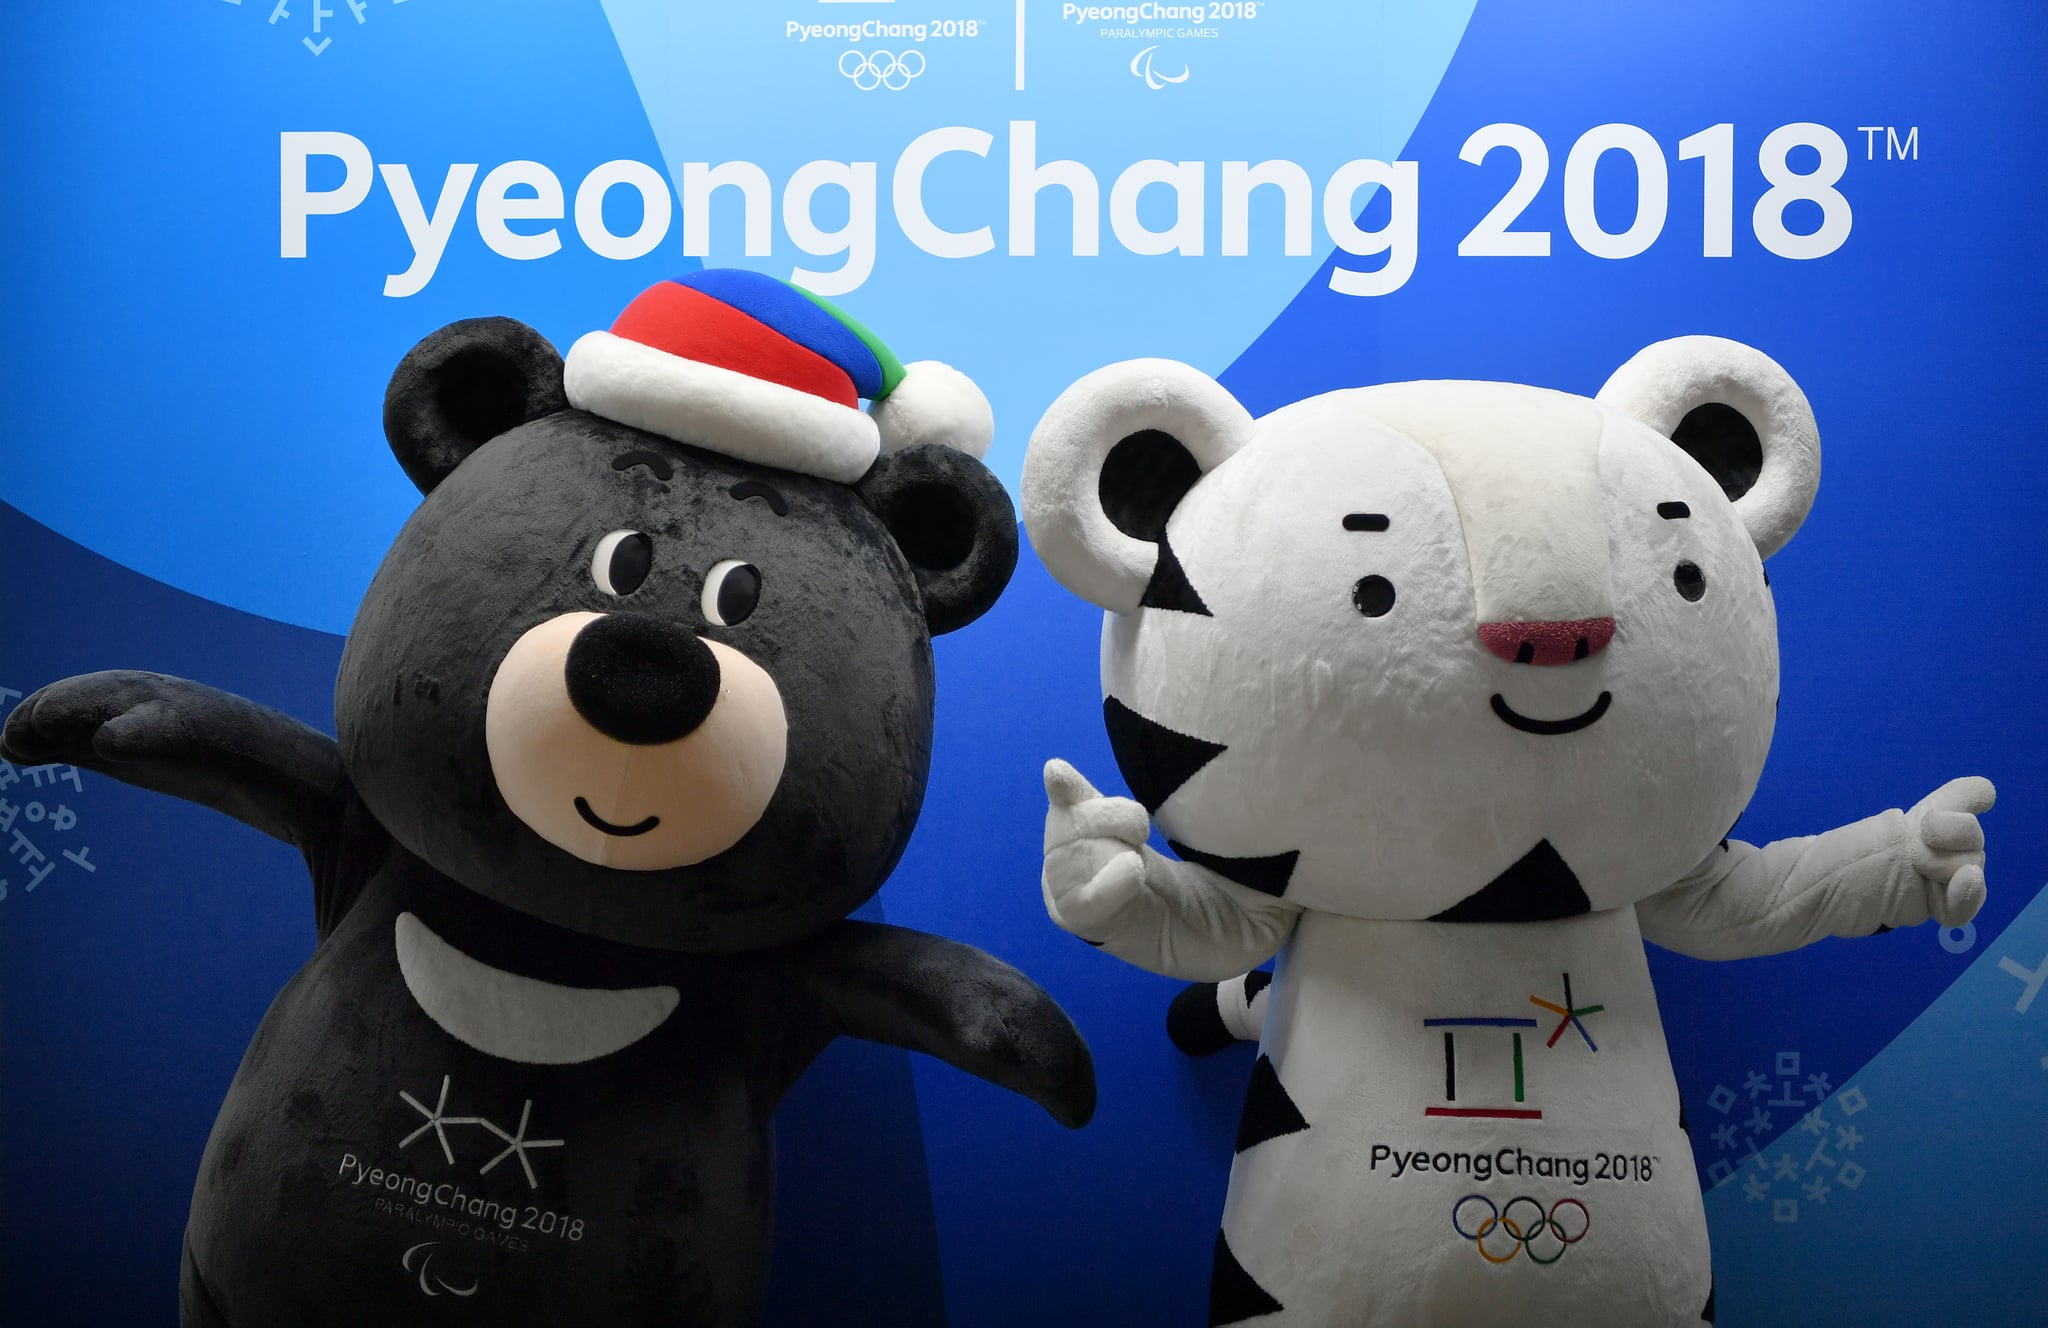 Olympics a Catalyst for Easing Korea Tensions